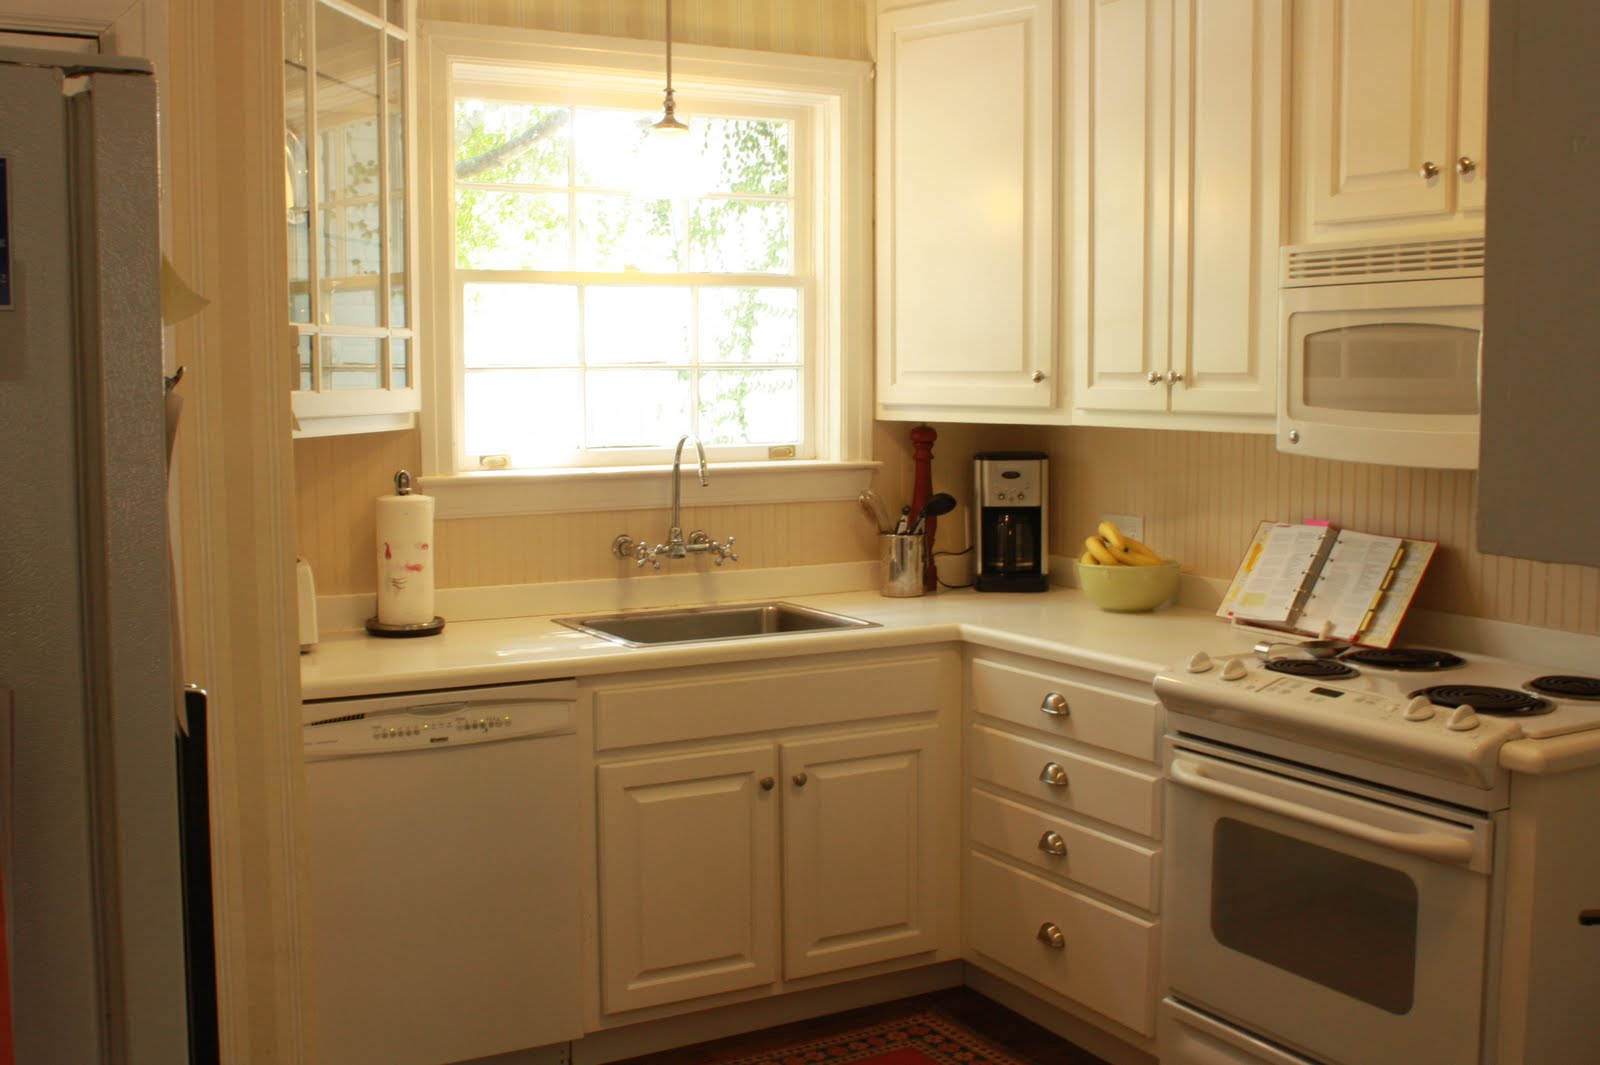 Corian Countertops and Backsplash